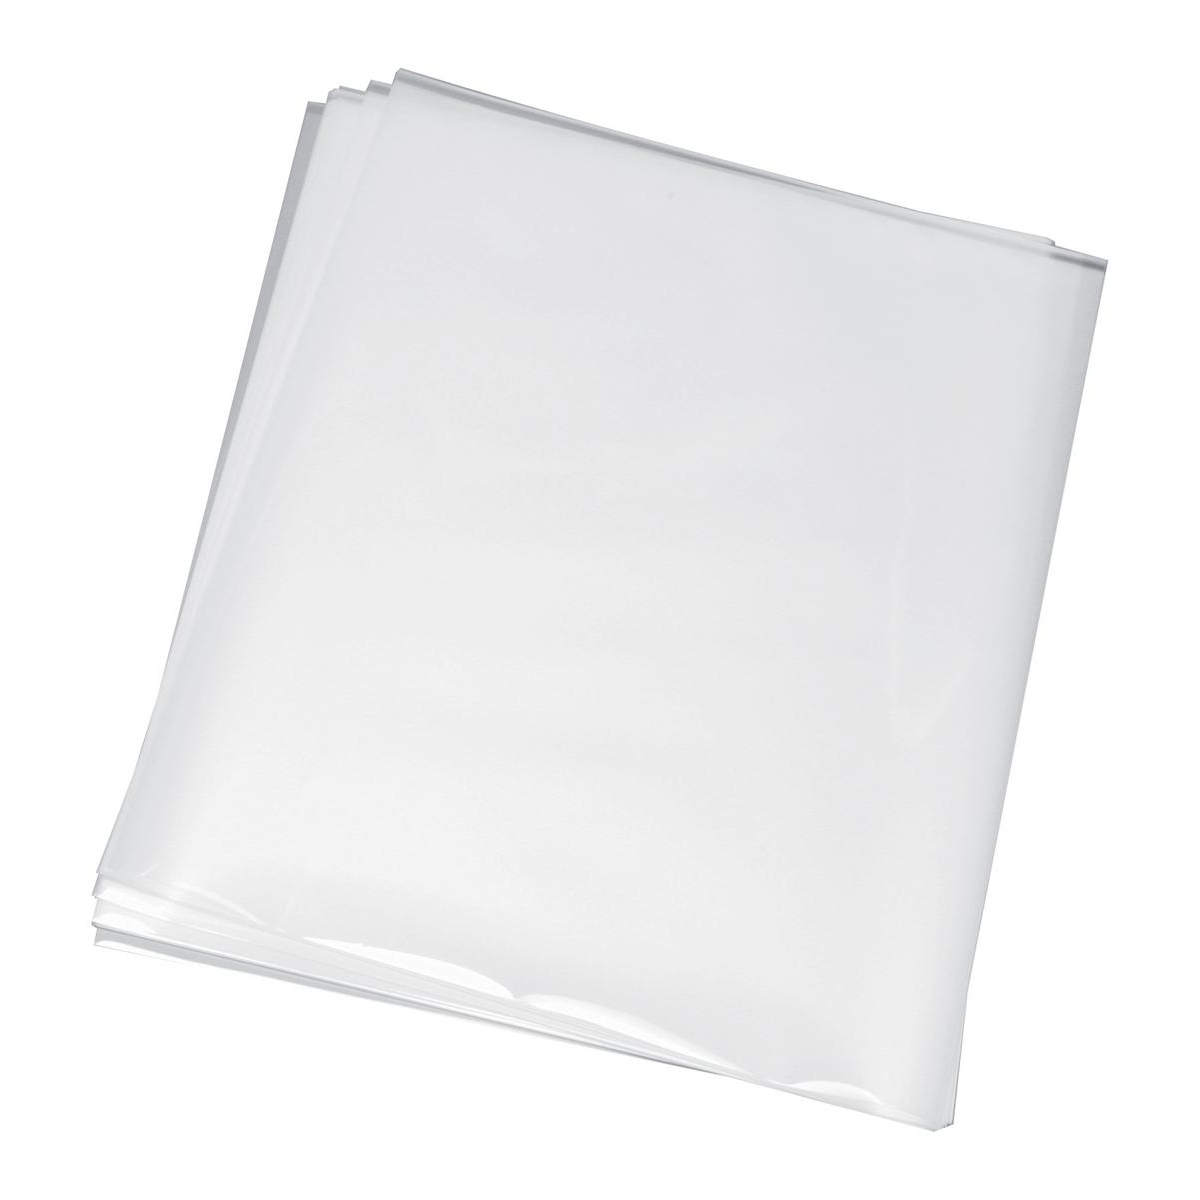 Laminator pouches GBC Laminating Pouches 250 Micron for A4 Ref 3200723 [Pack 100]